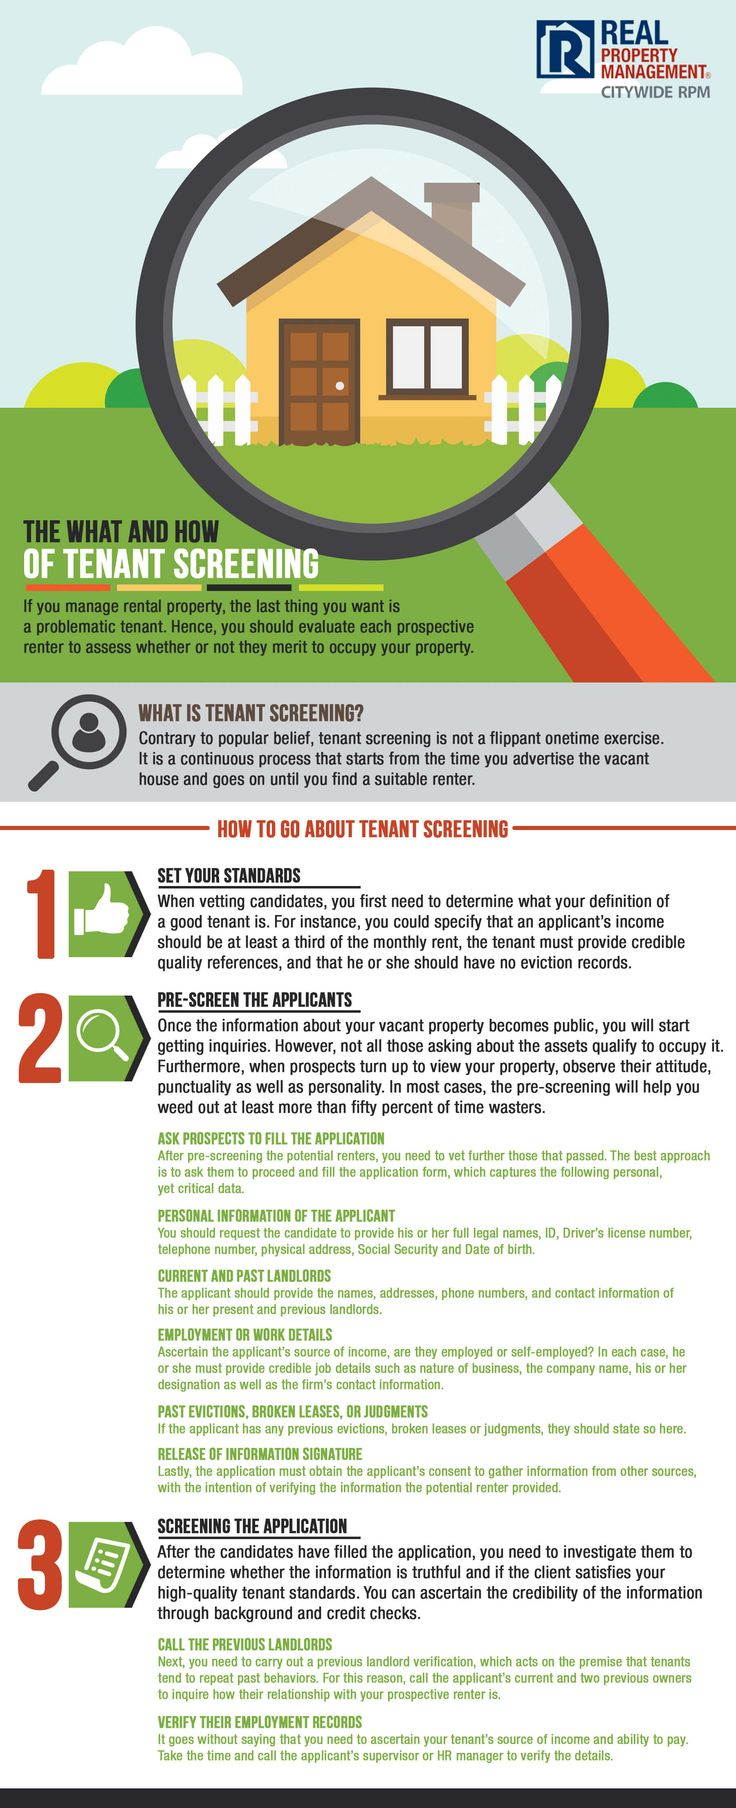 If you manage rental property you're probably aware of the headaches that can be caused by a problematic tenant. In order to reduce the likelihood of having to deal with problematic tenants, it's important to implement effective tenant screening. To give you some guidance we've put together this guide to help you in your tenant screening process.